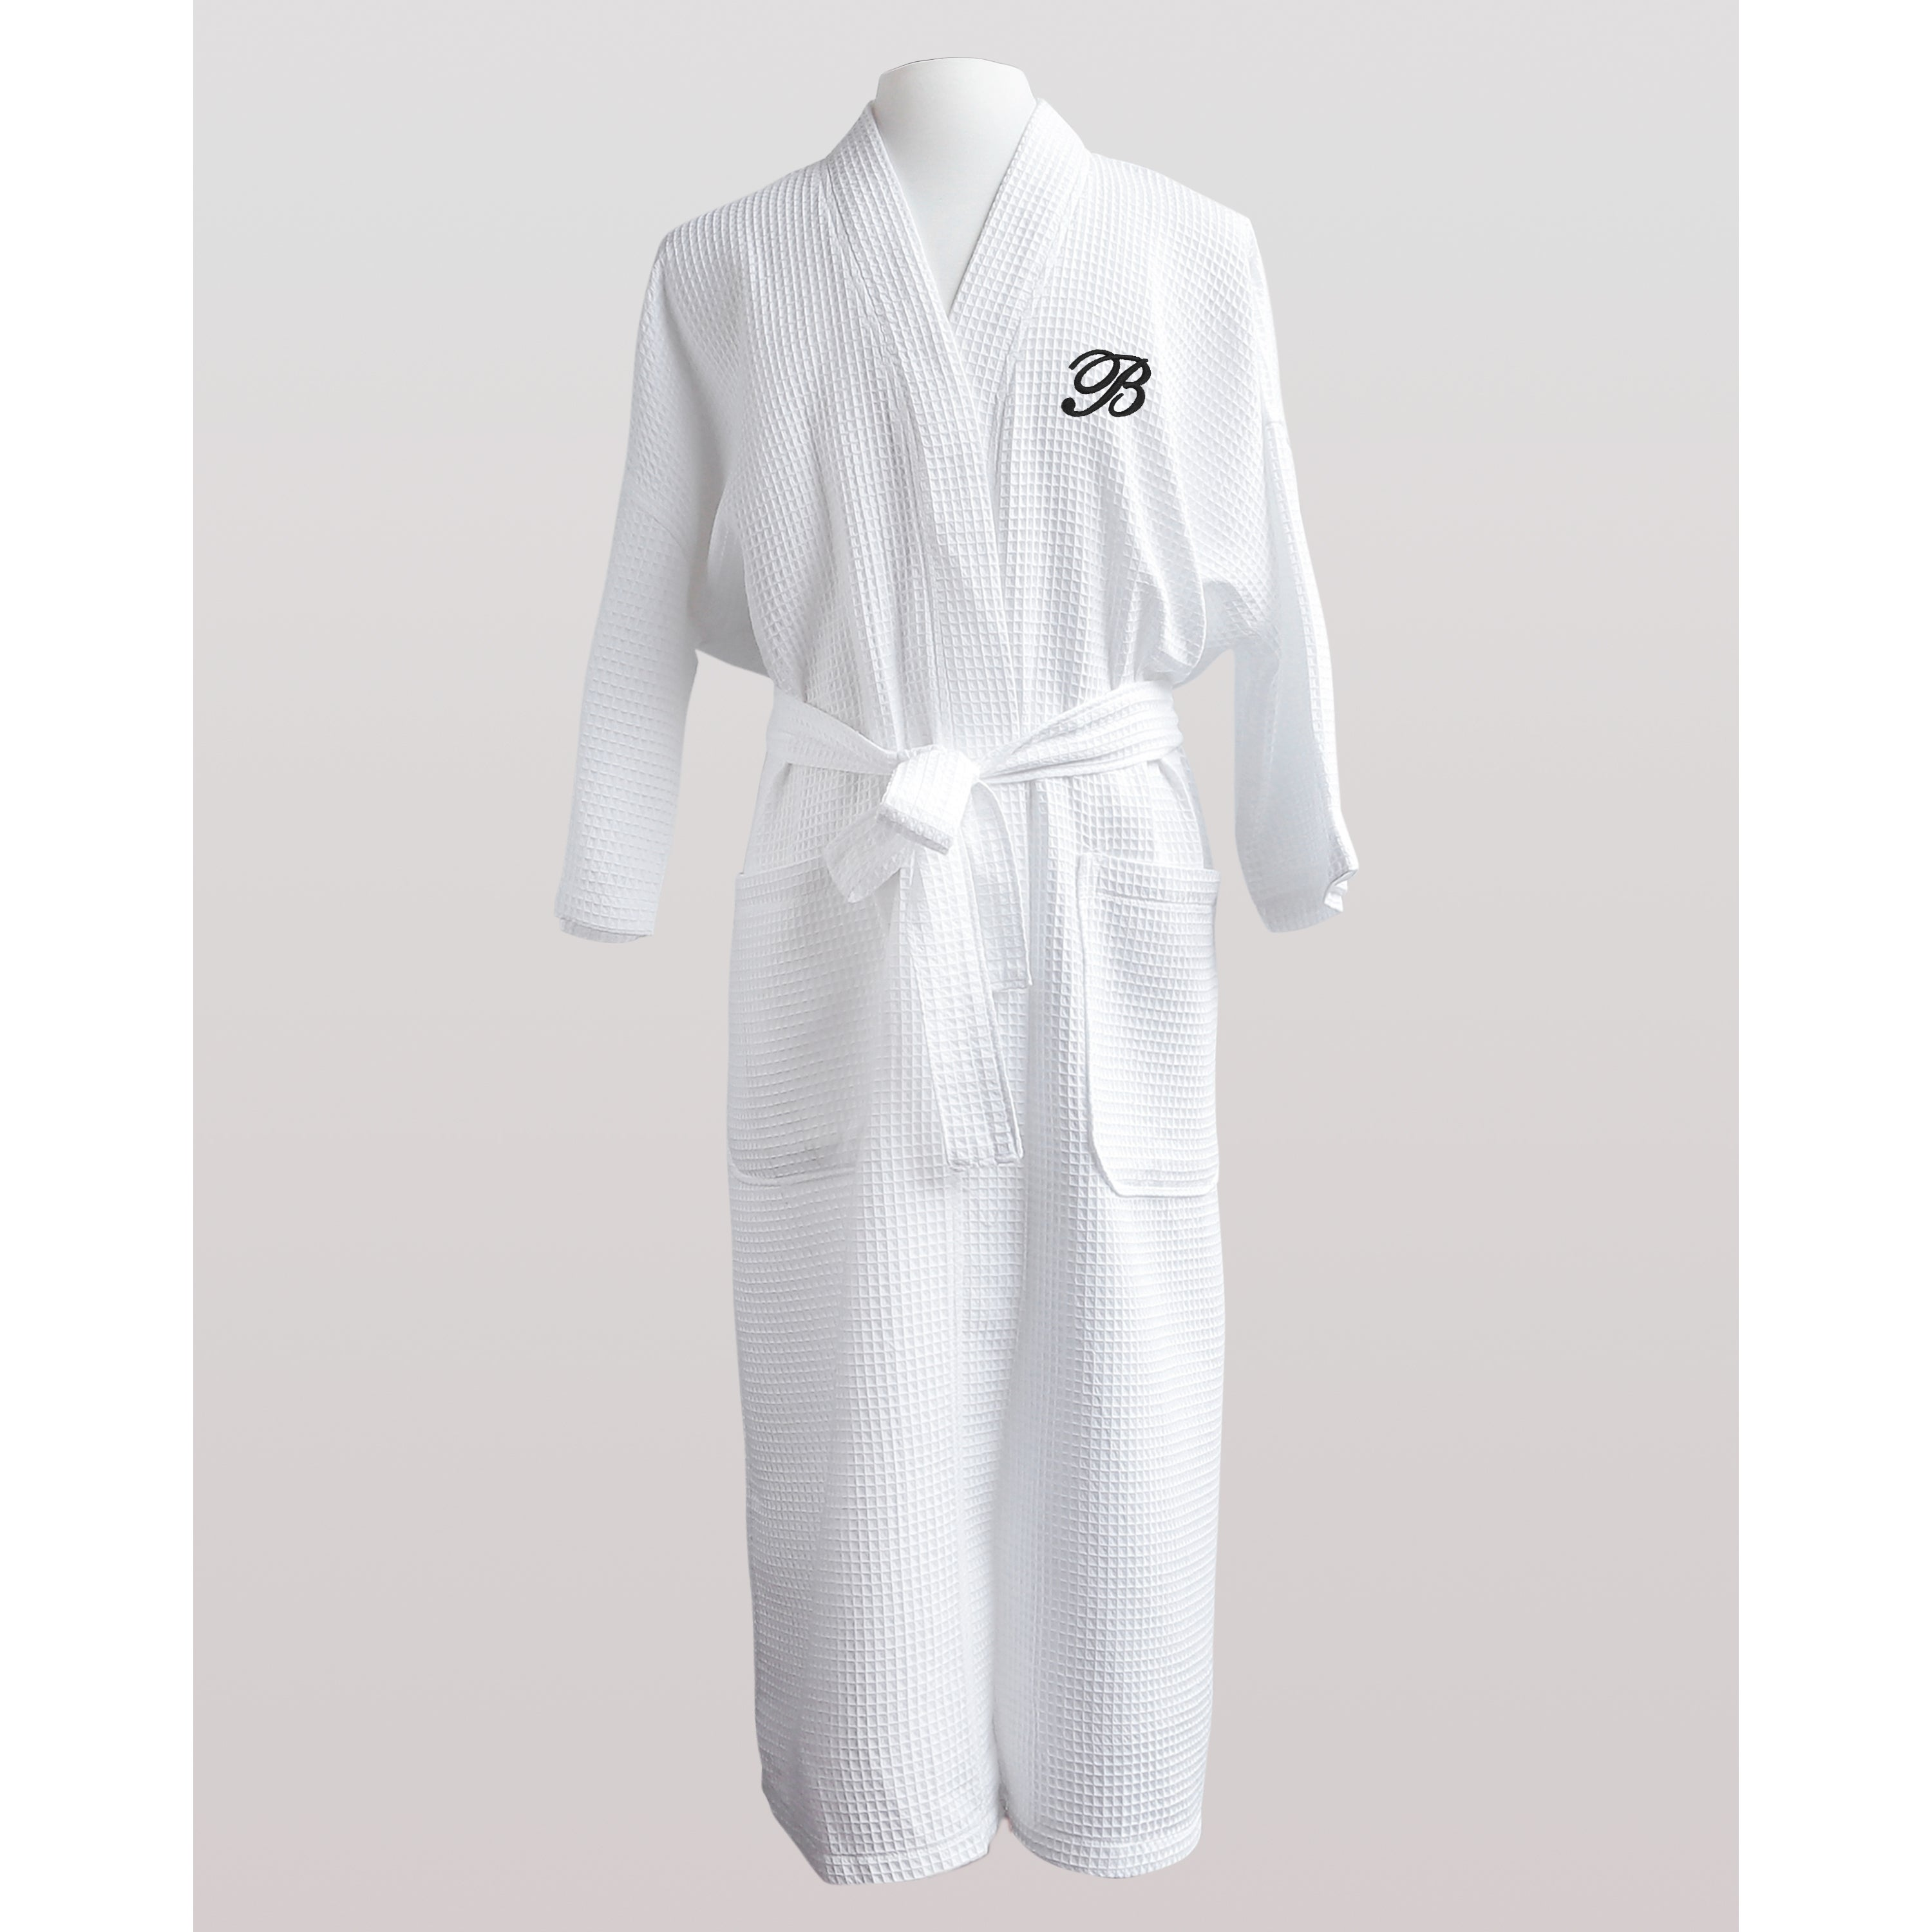 12b5676f92 Shop Finley Unisex Egyptian Cotton Monogram Waffle Spa Robe - Free Shipping  Today - Overstock - 10102576